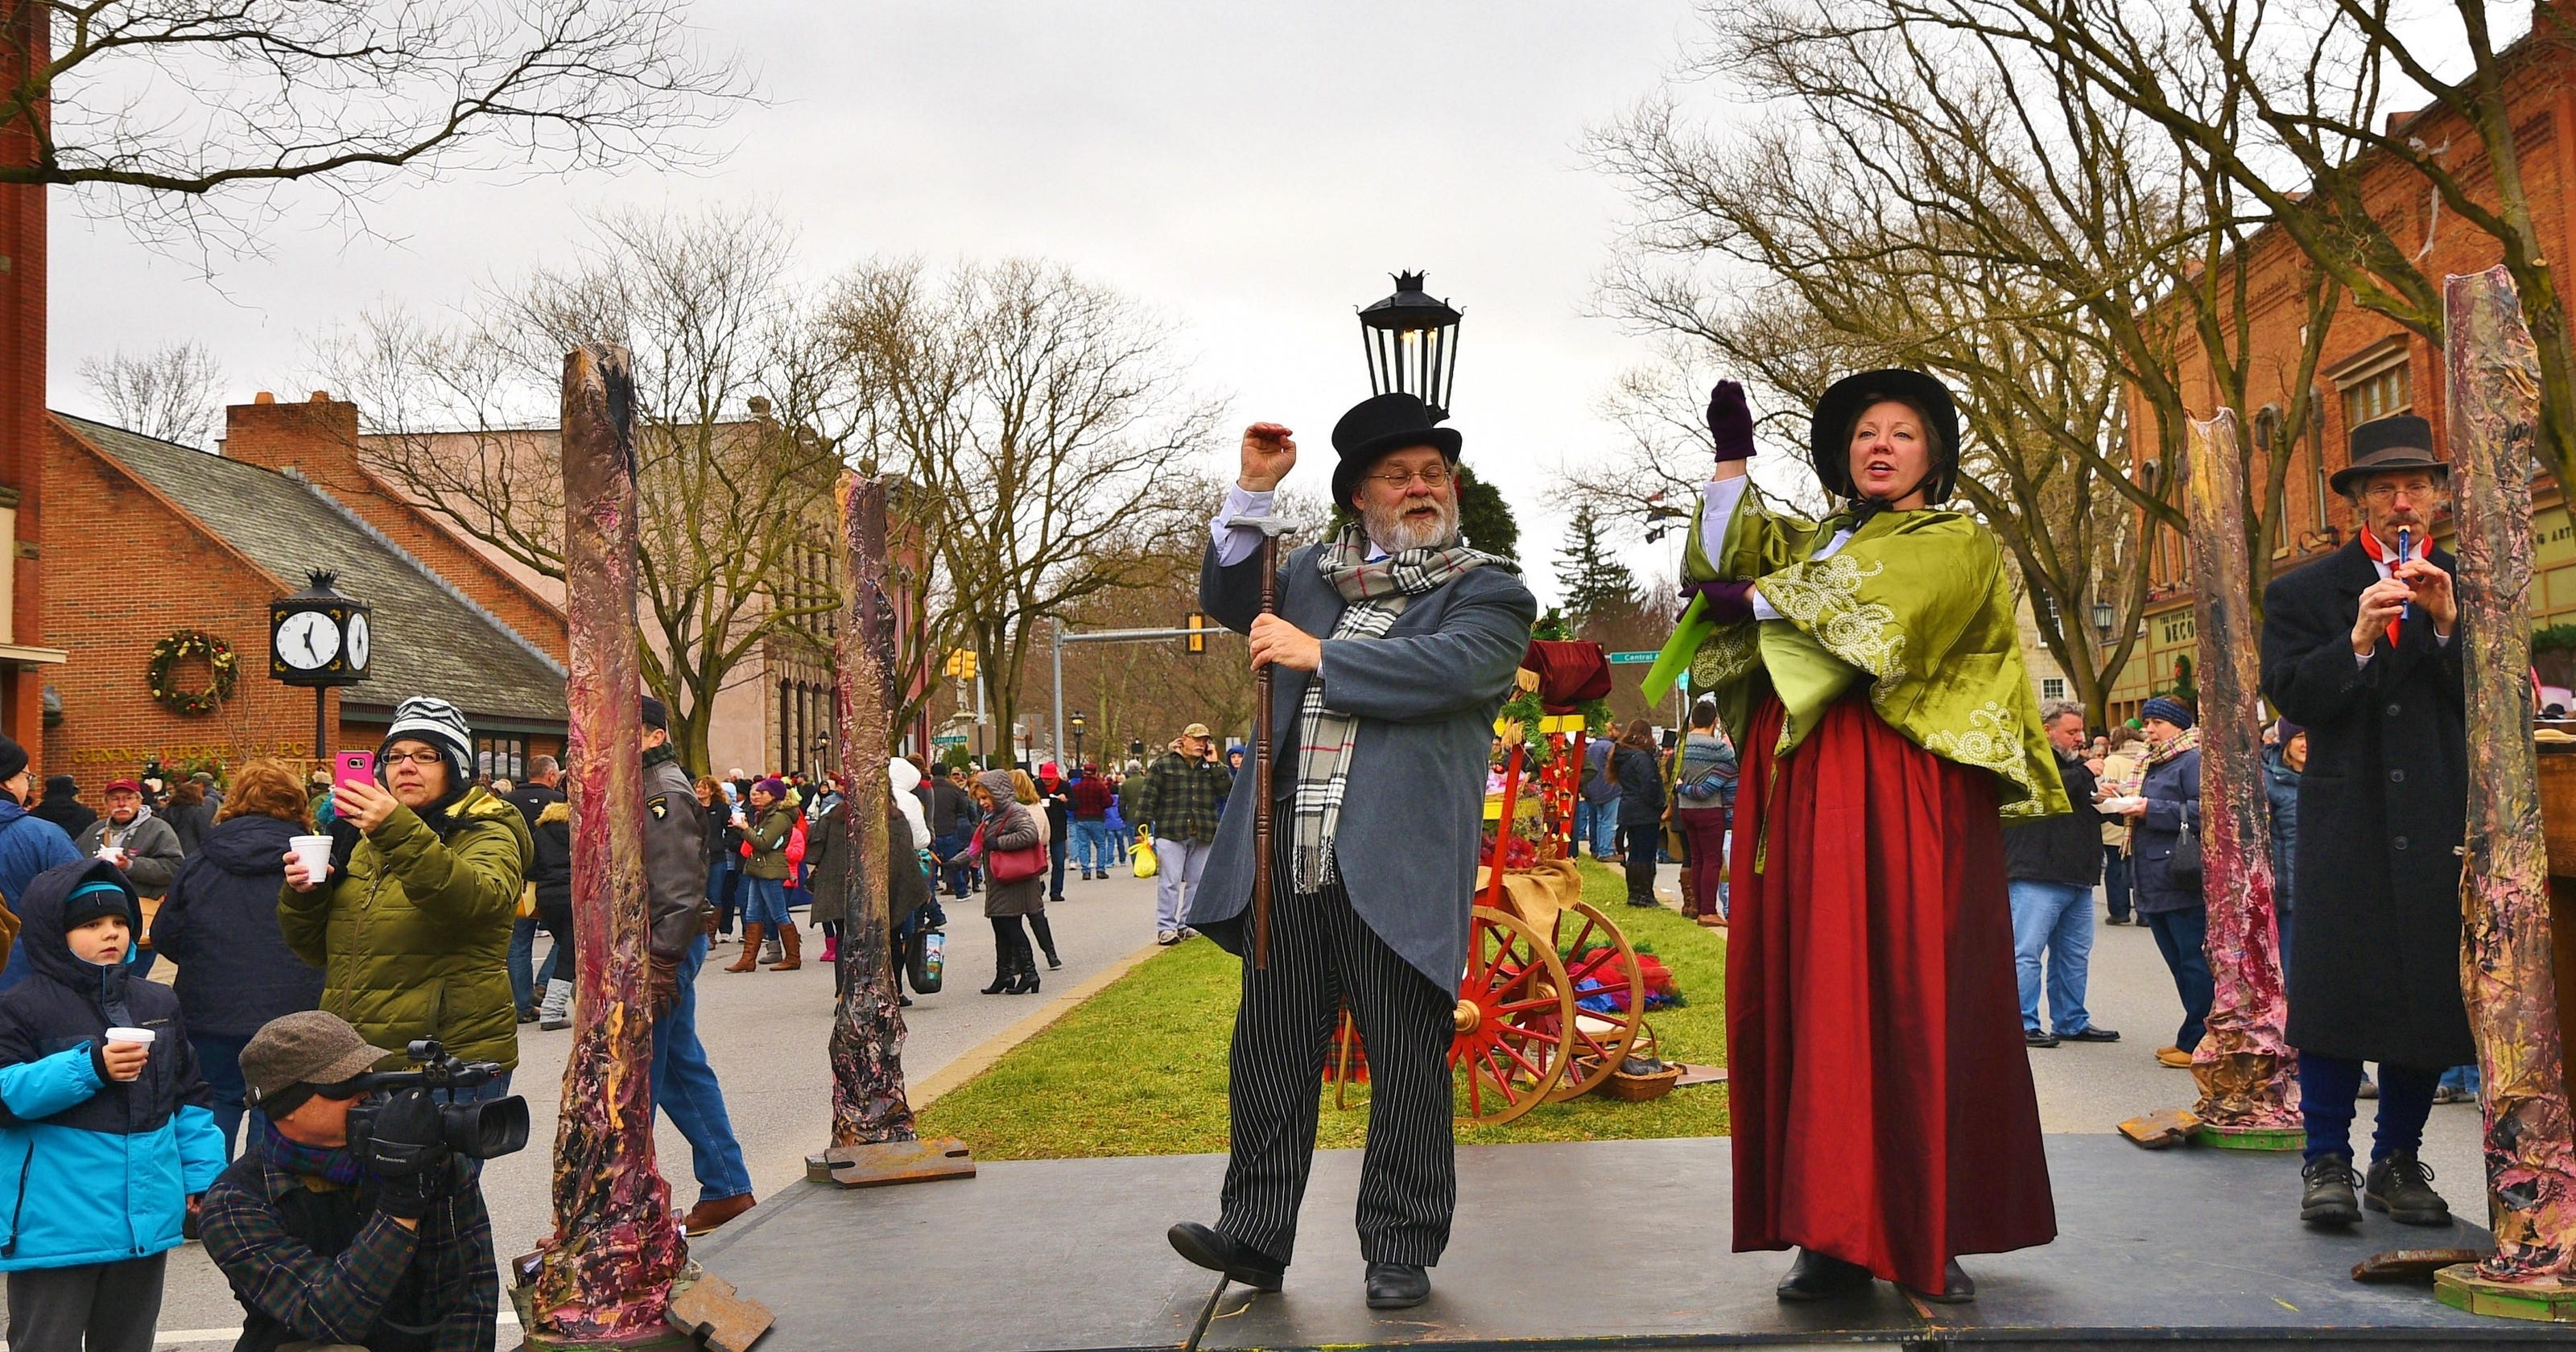 wellsboro celebrates dickens of a christmas for 34th year